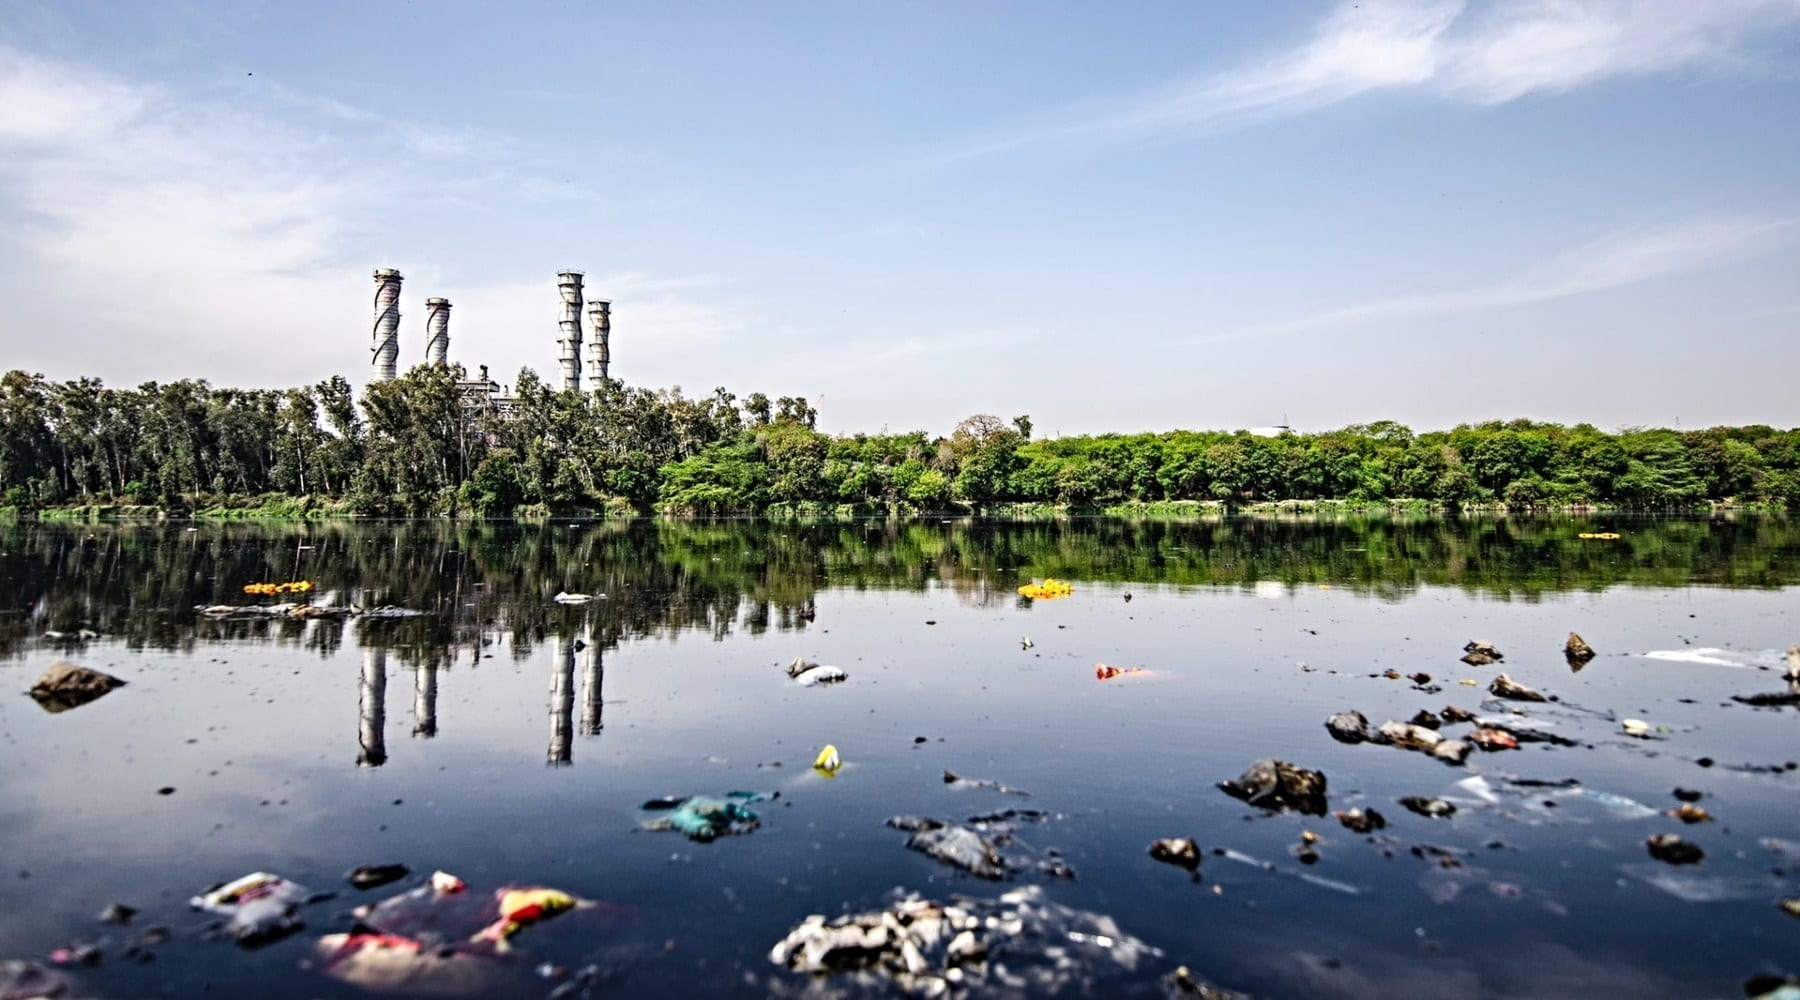 Global Water Quality Deterioration Called 'Invisible Crisis'